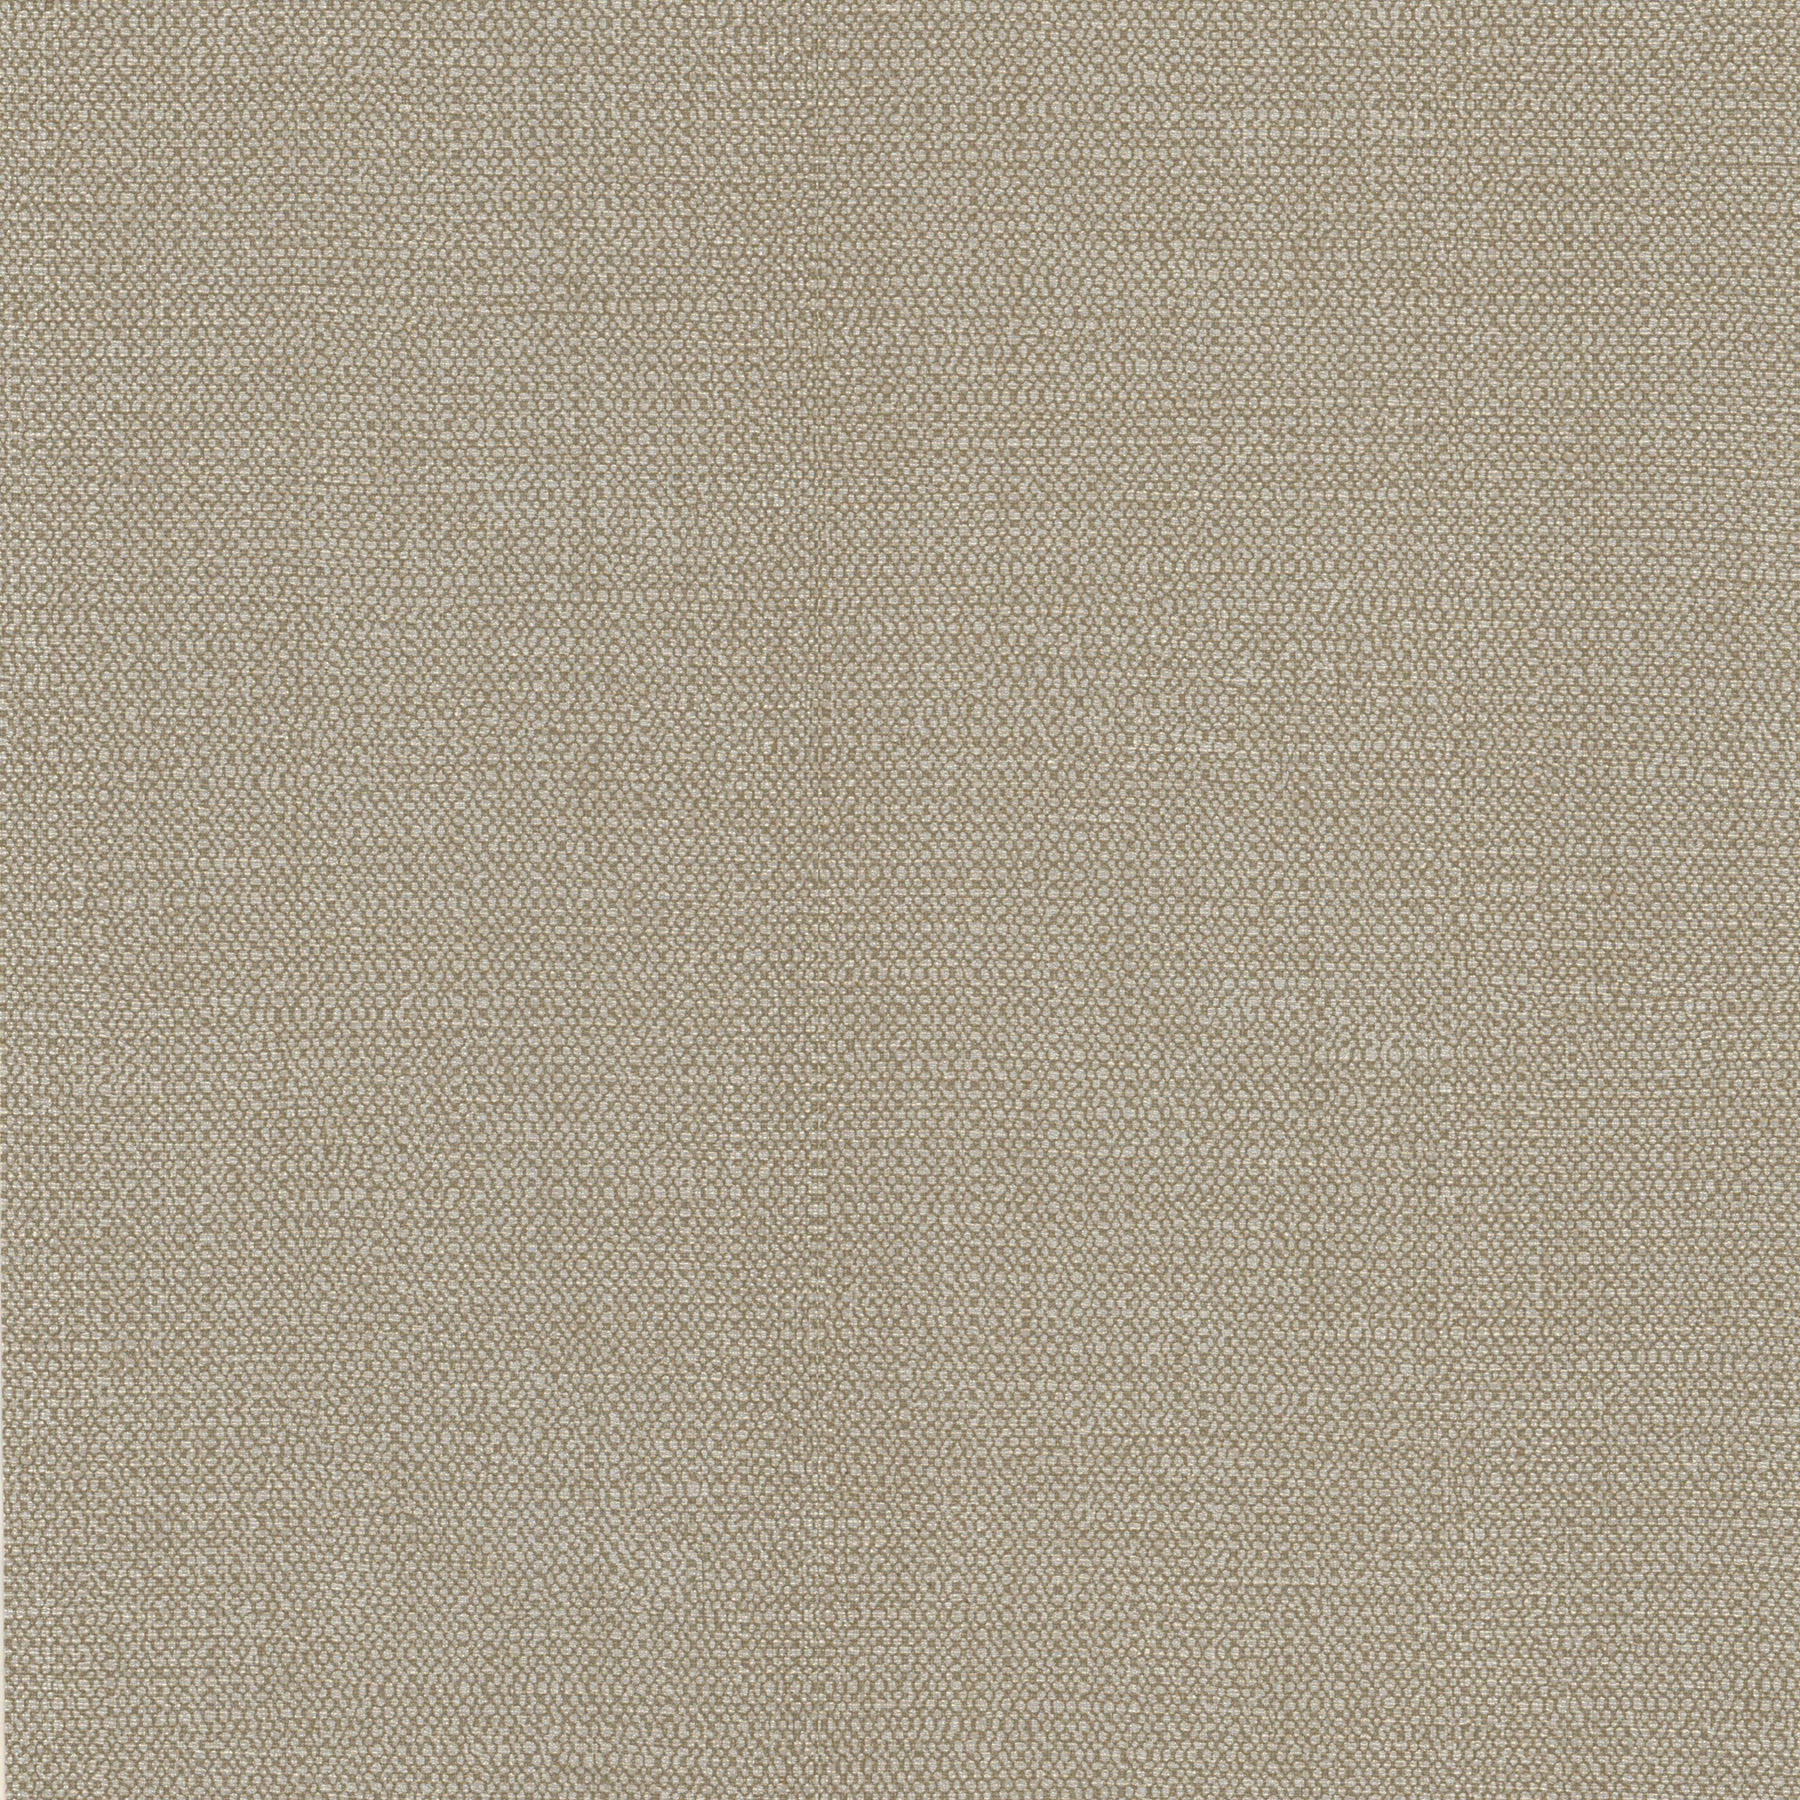 Picture of Auer Brown Canvas Texture Wallpaper